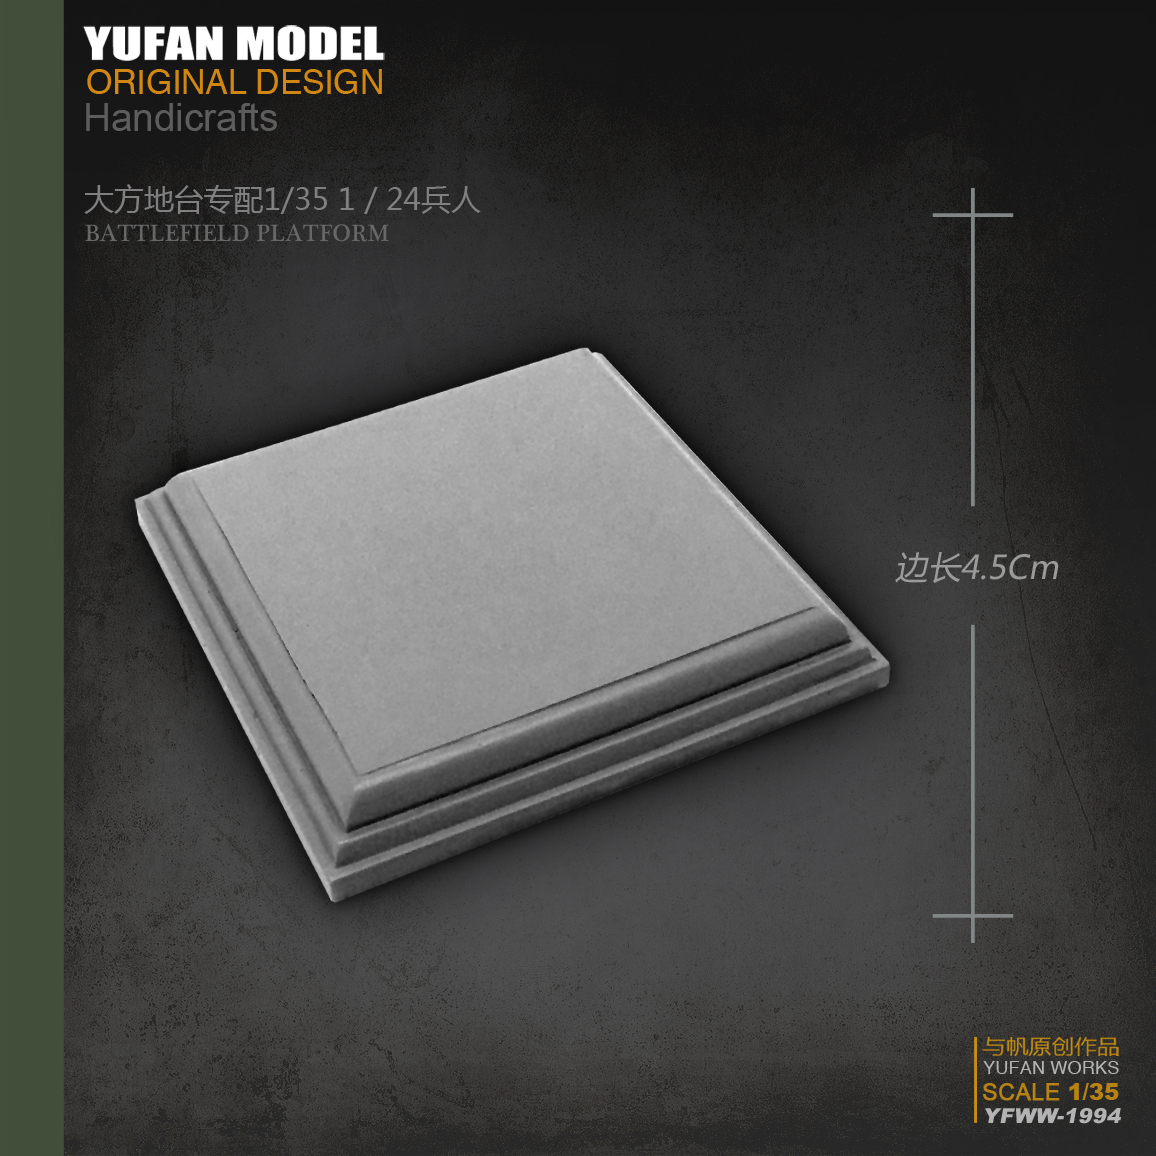 Yufan Model  Resin Platform Of 4.5cm Resin Soldier Yfww-1994